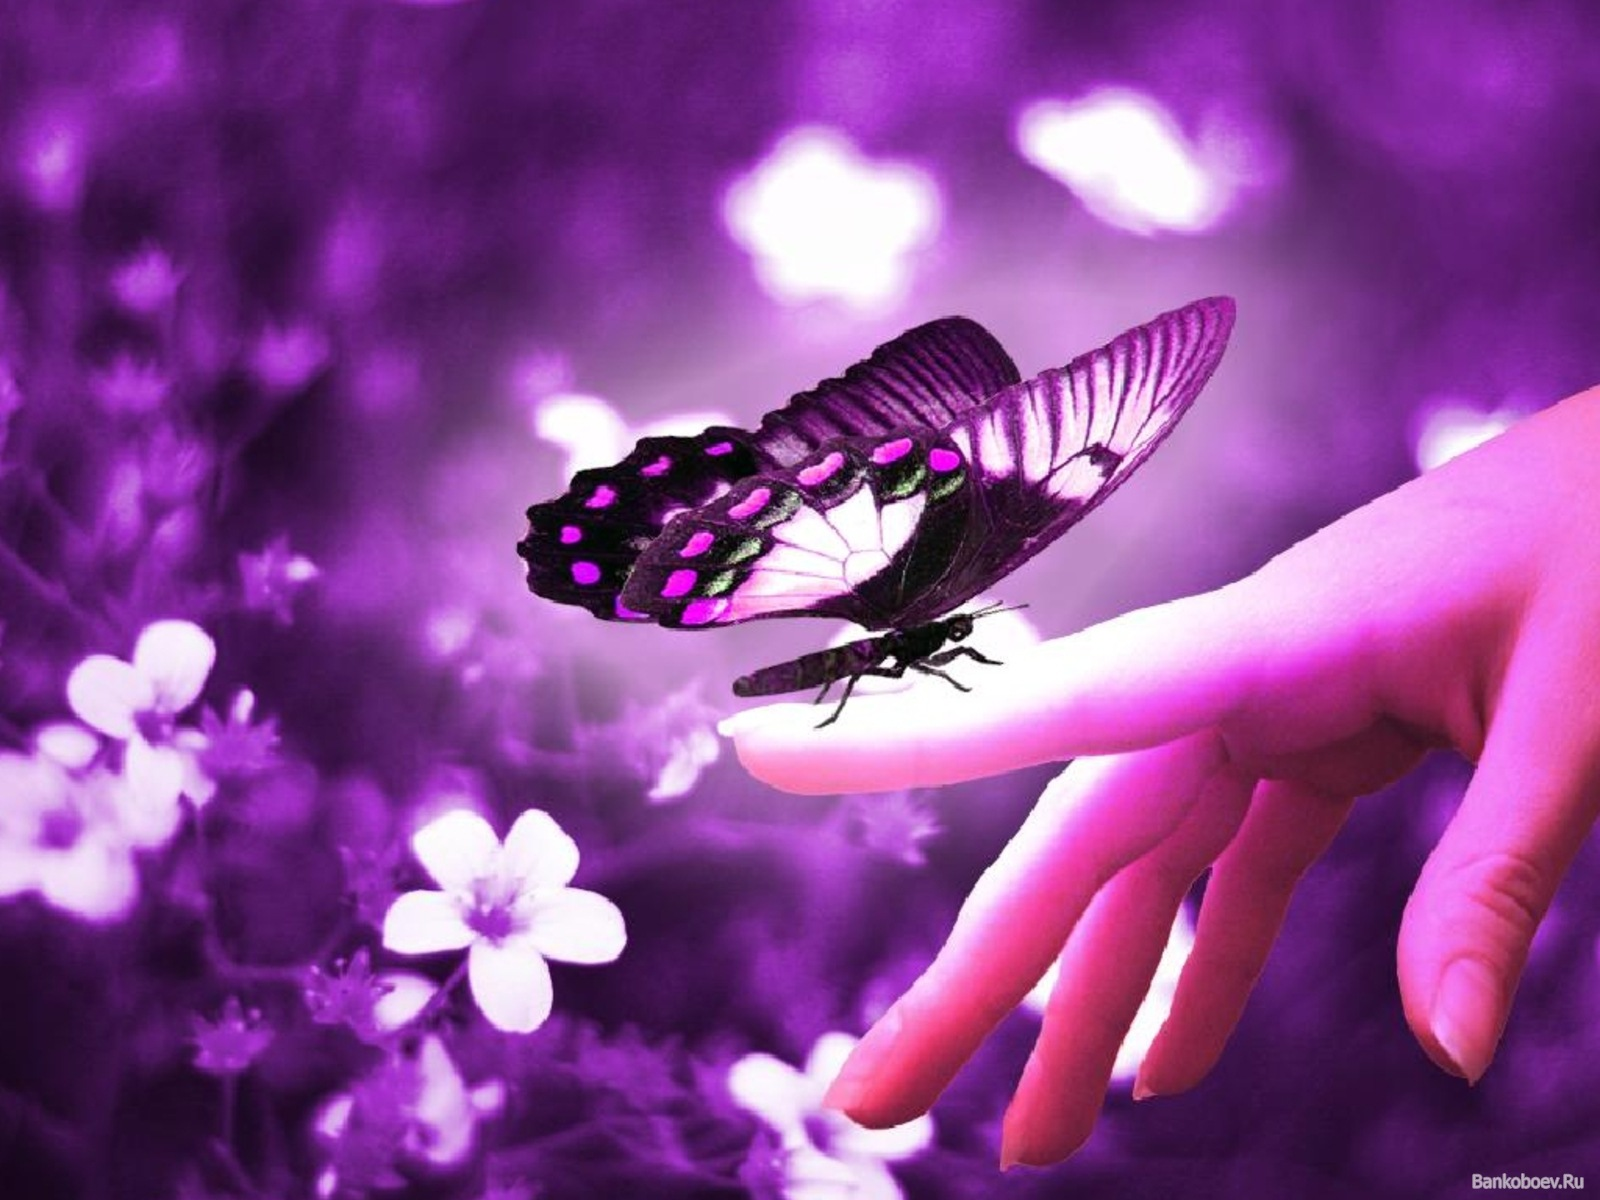 Cute Butterfly in Purple - Computer Screen Saver. PC ...